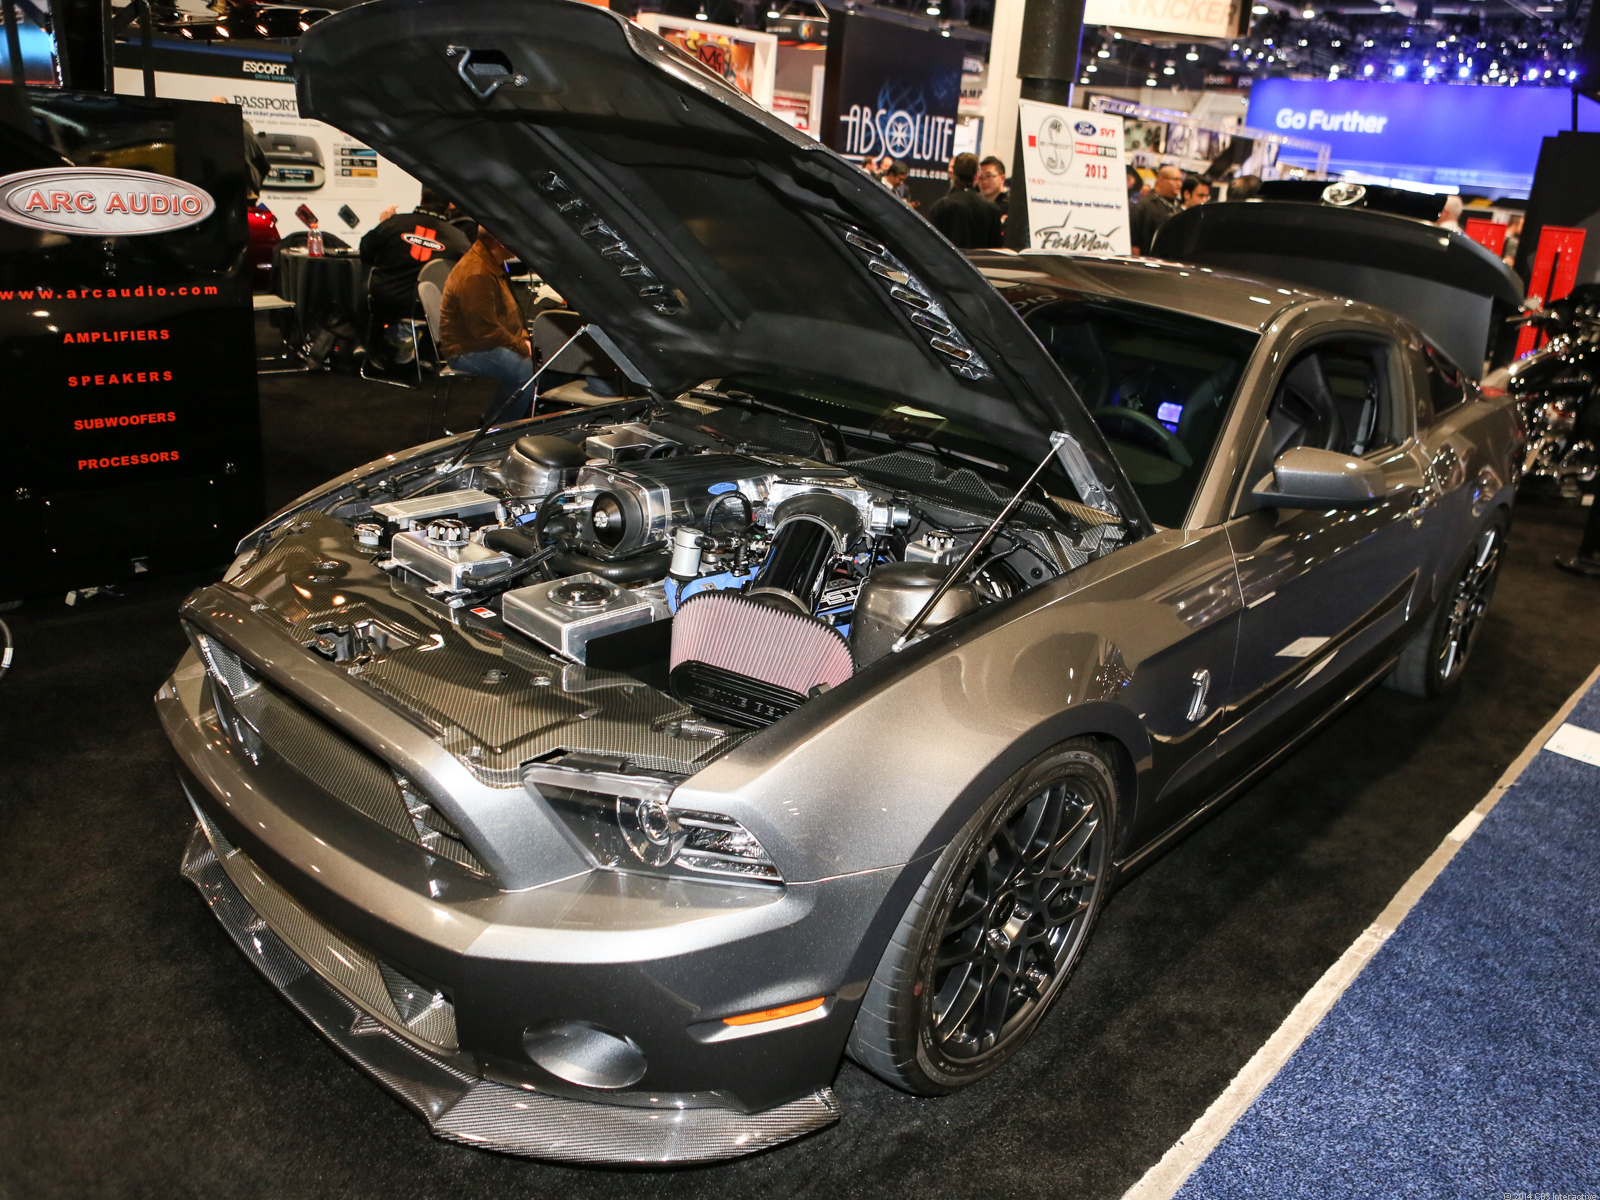 ARC Audio Ford Shelby GT500